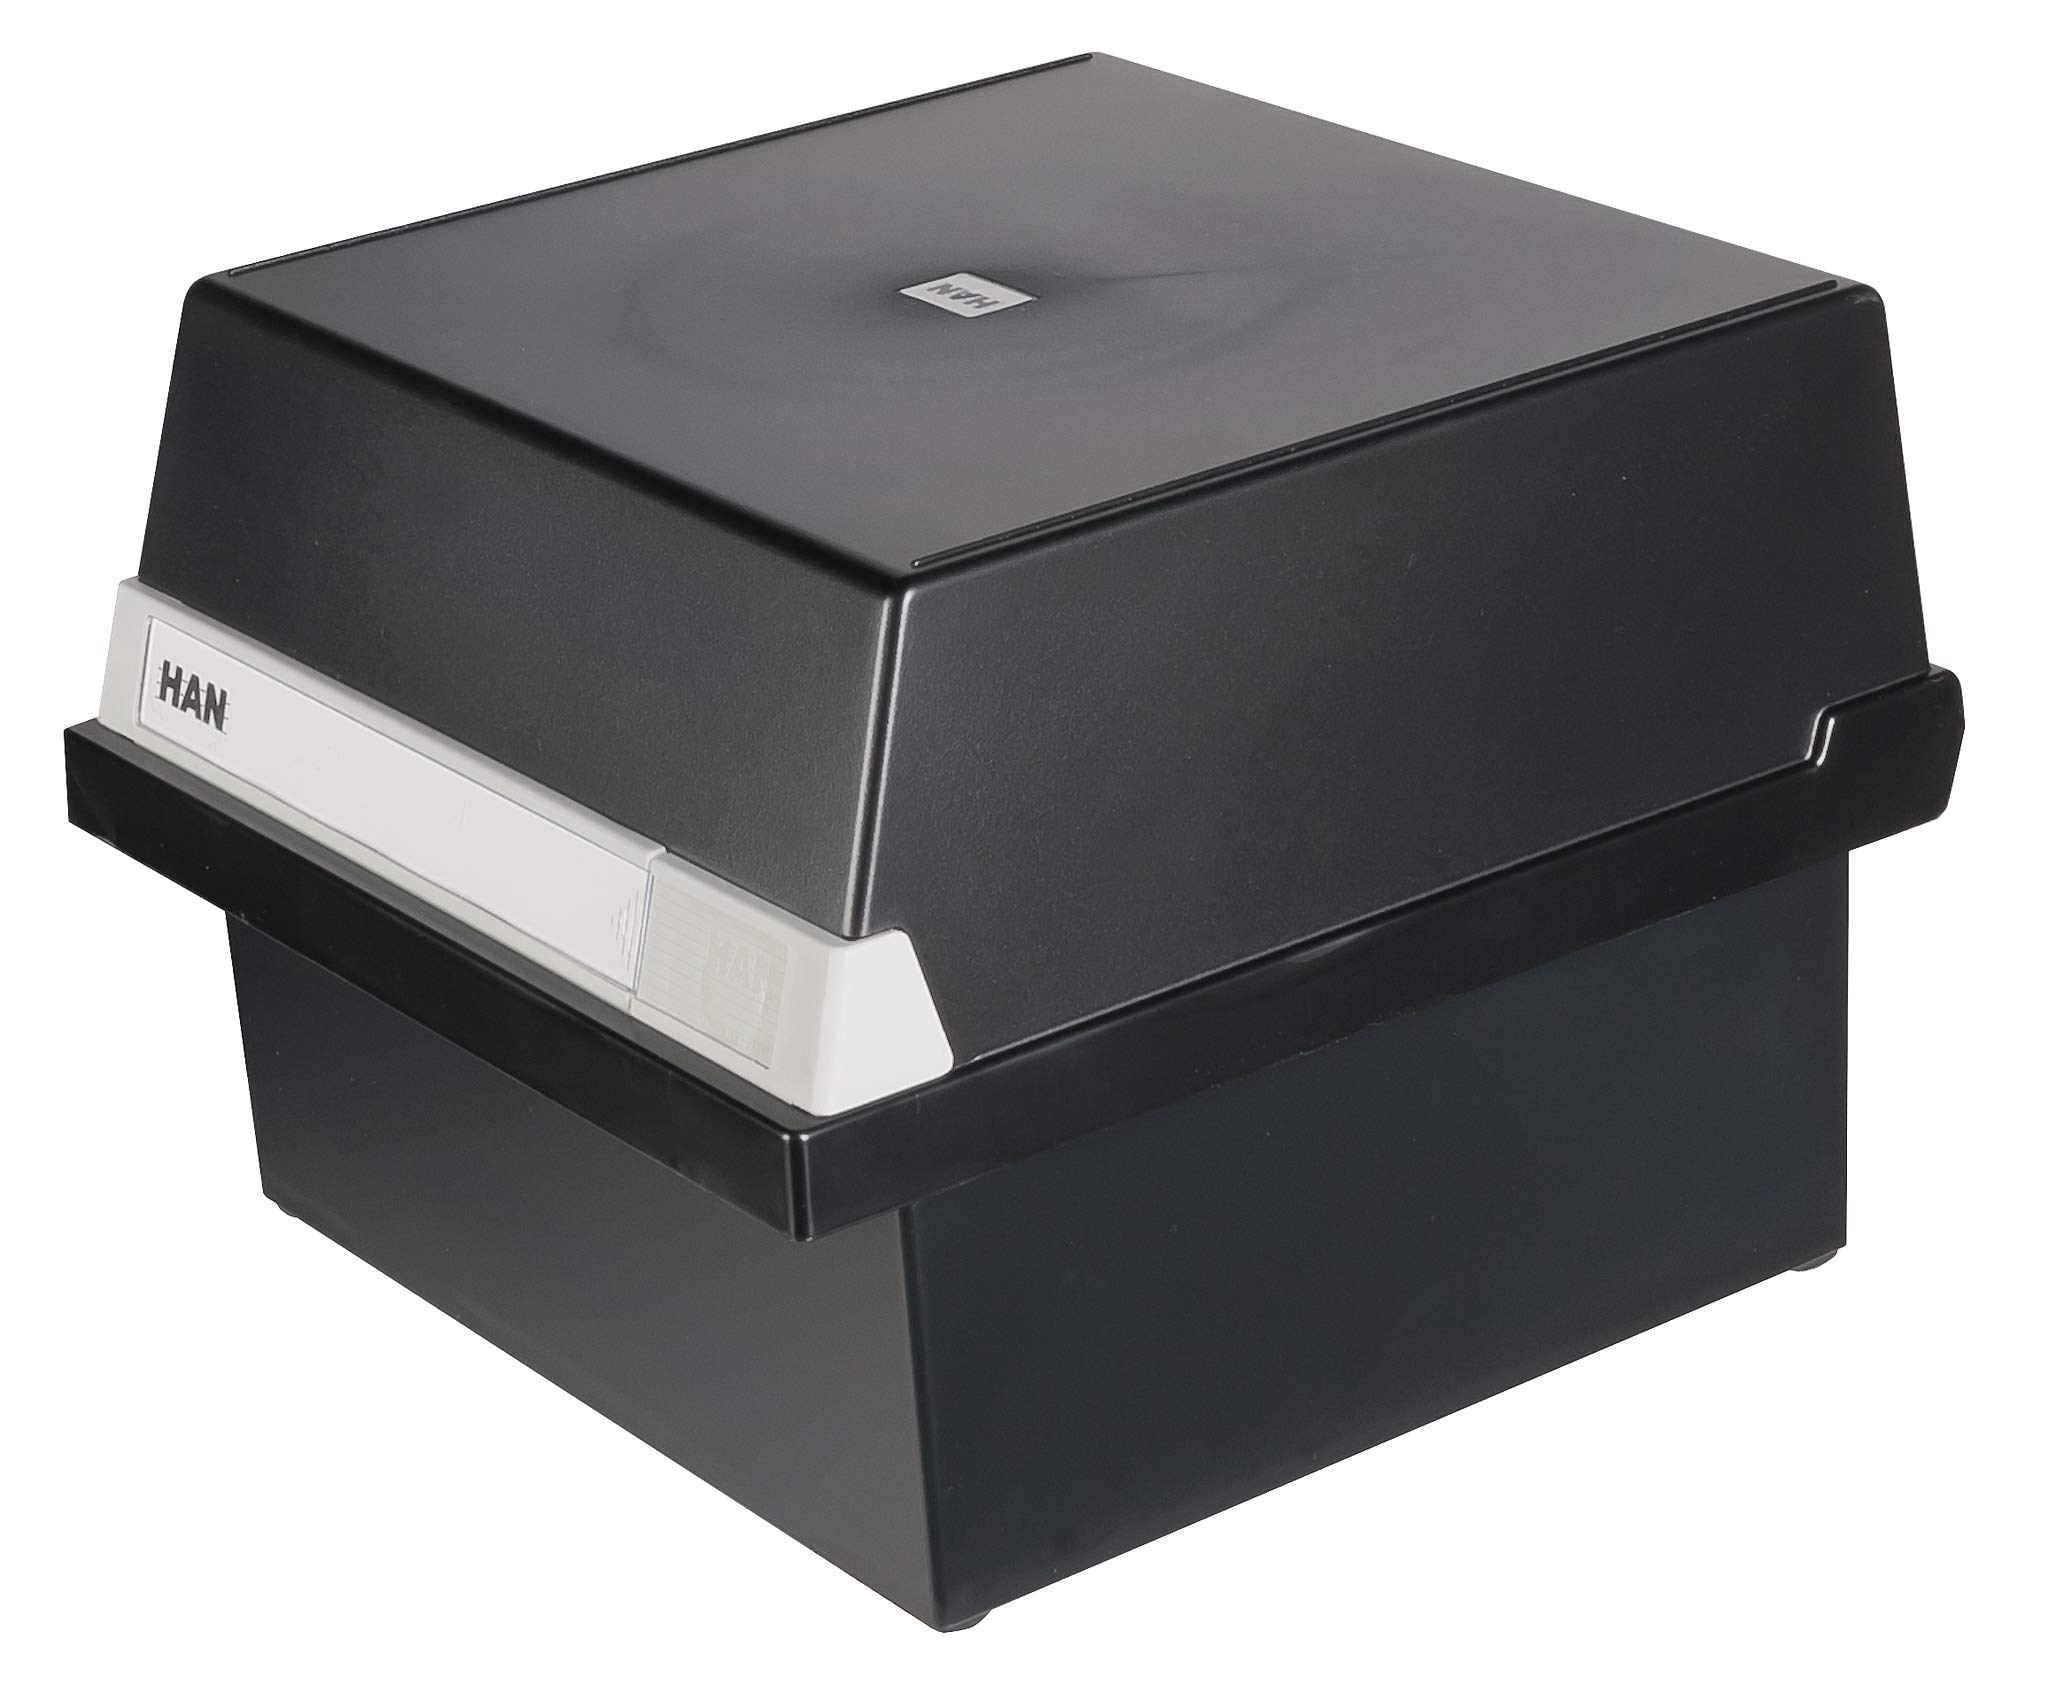 HAN 965-13, Card Filing Box A5 Landscape. Innovative, Attractive Design Holds 800 Cards, readjustable lid Supplied with Large Inscription Label, Black by HAN